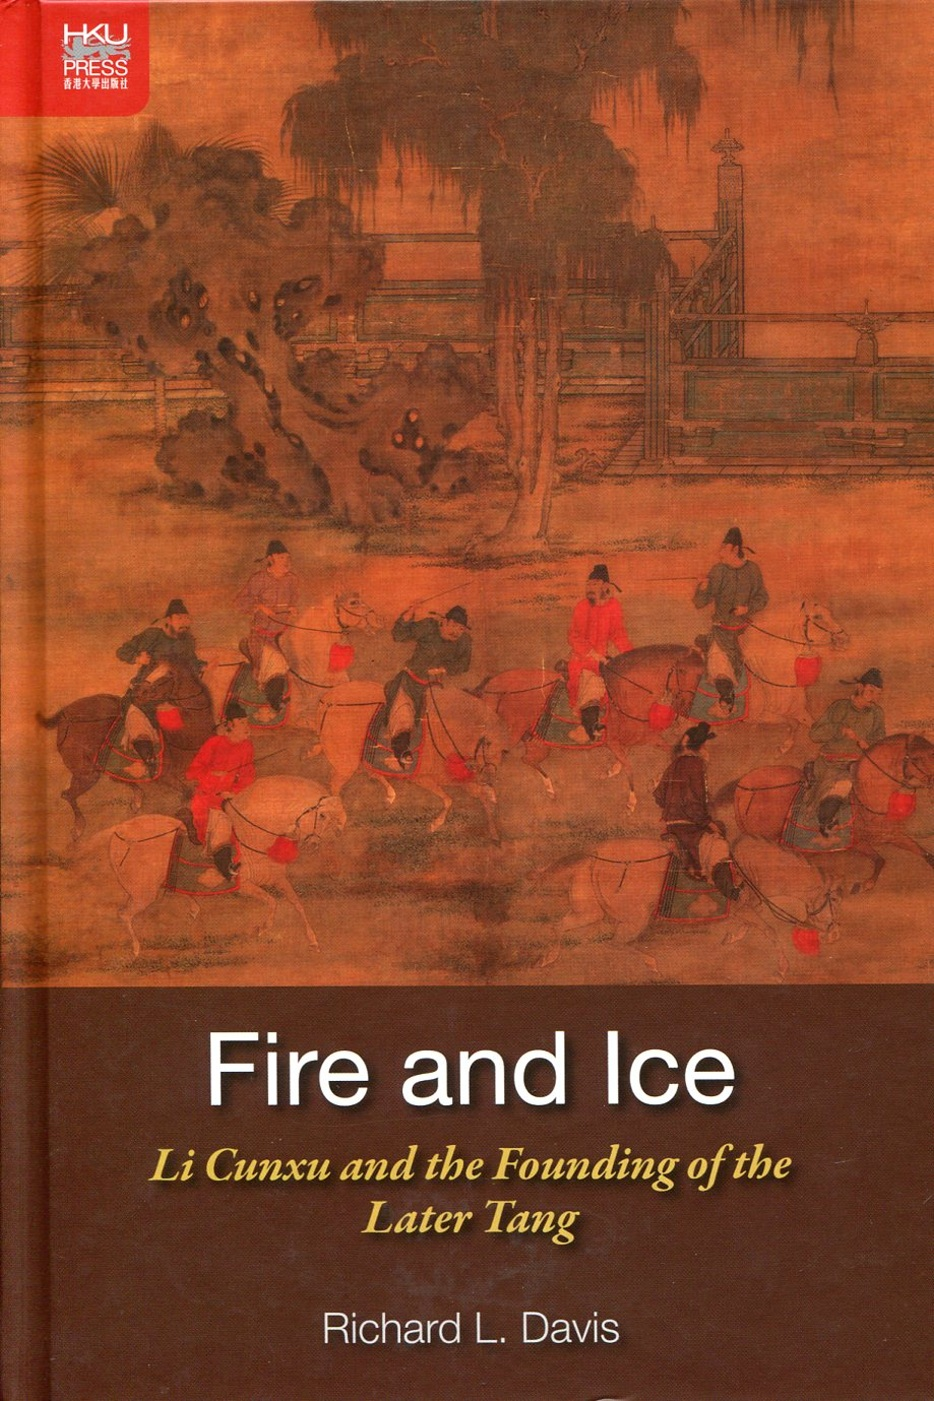 Fire and Ice:Li Cunxu and the Founding of the Later Tang